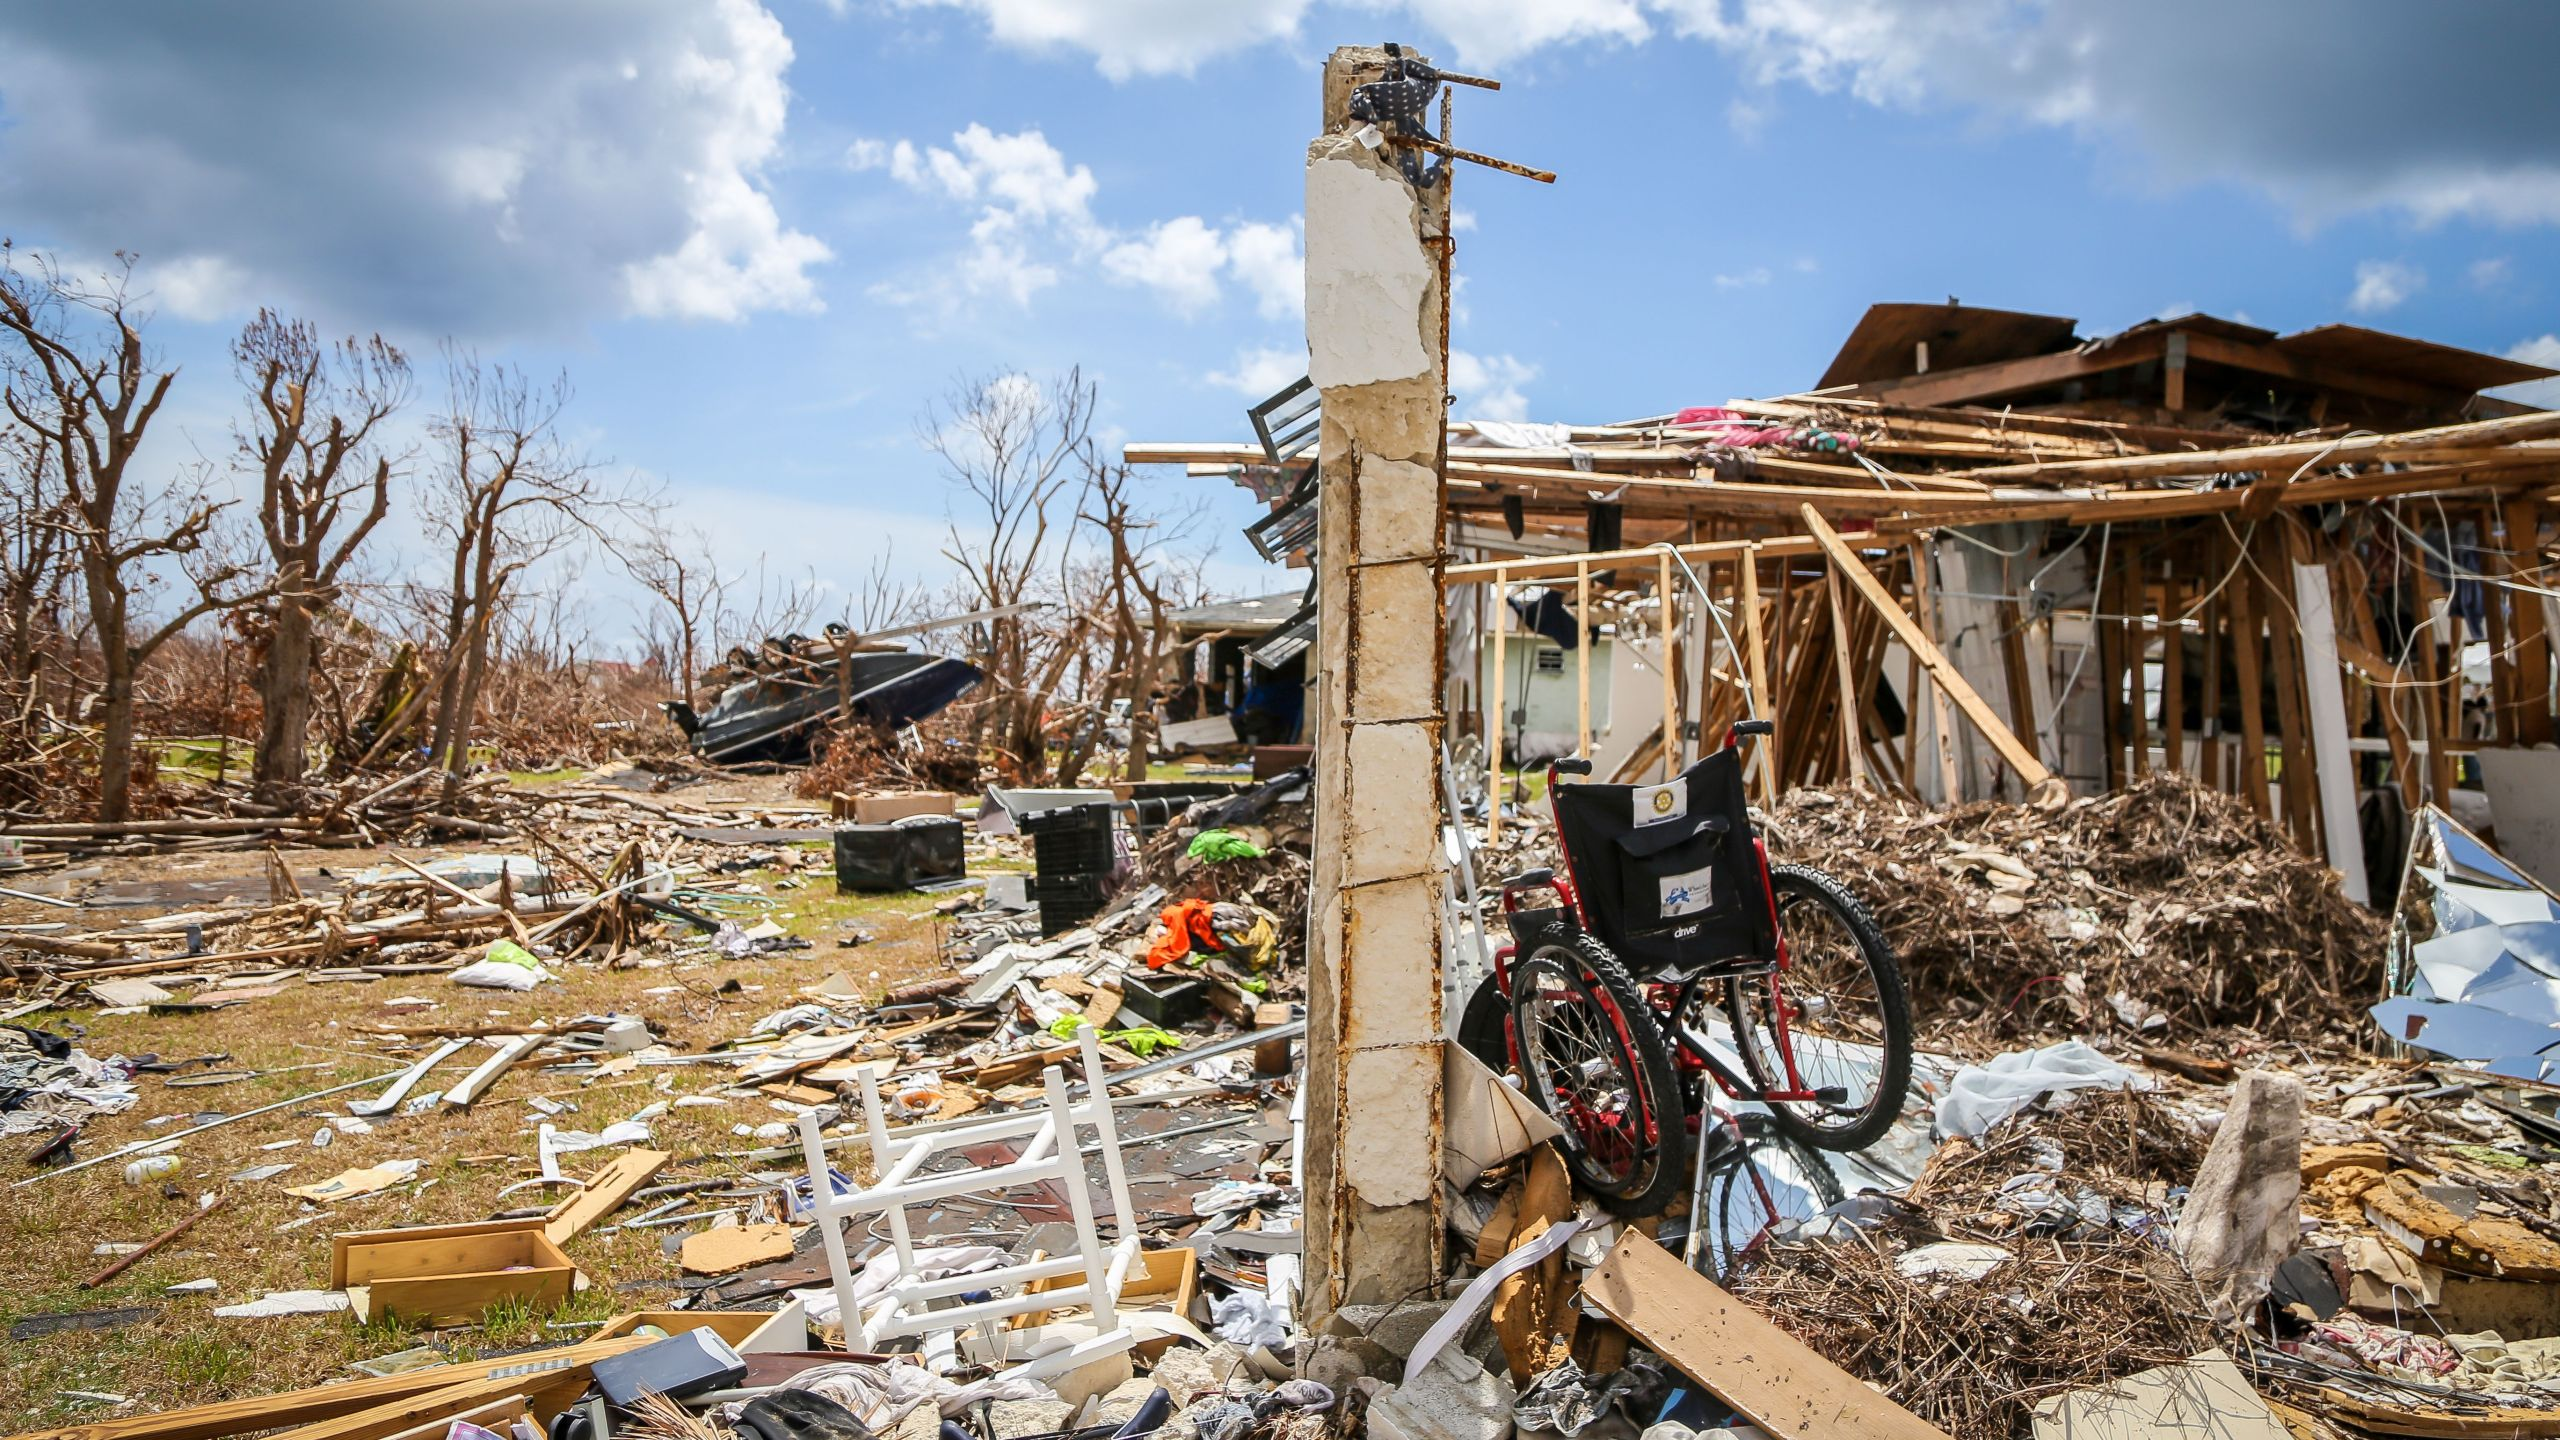 Destroyed homes are seen in High Rock, Grand Bahama, Bahamas, on Sept. 16, 2019. (Credit: Zak Bennett / AFP / Getty Images)